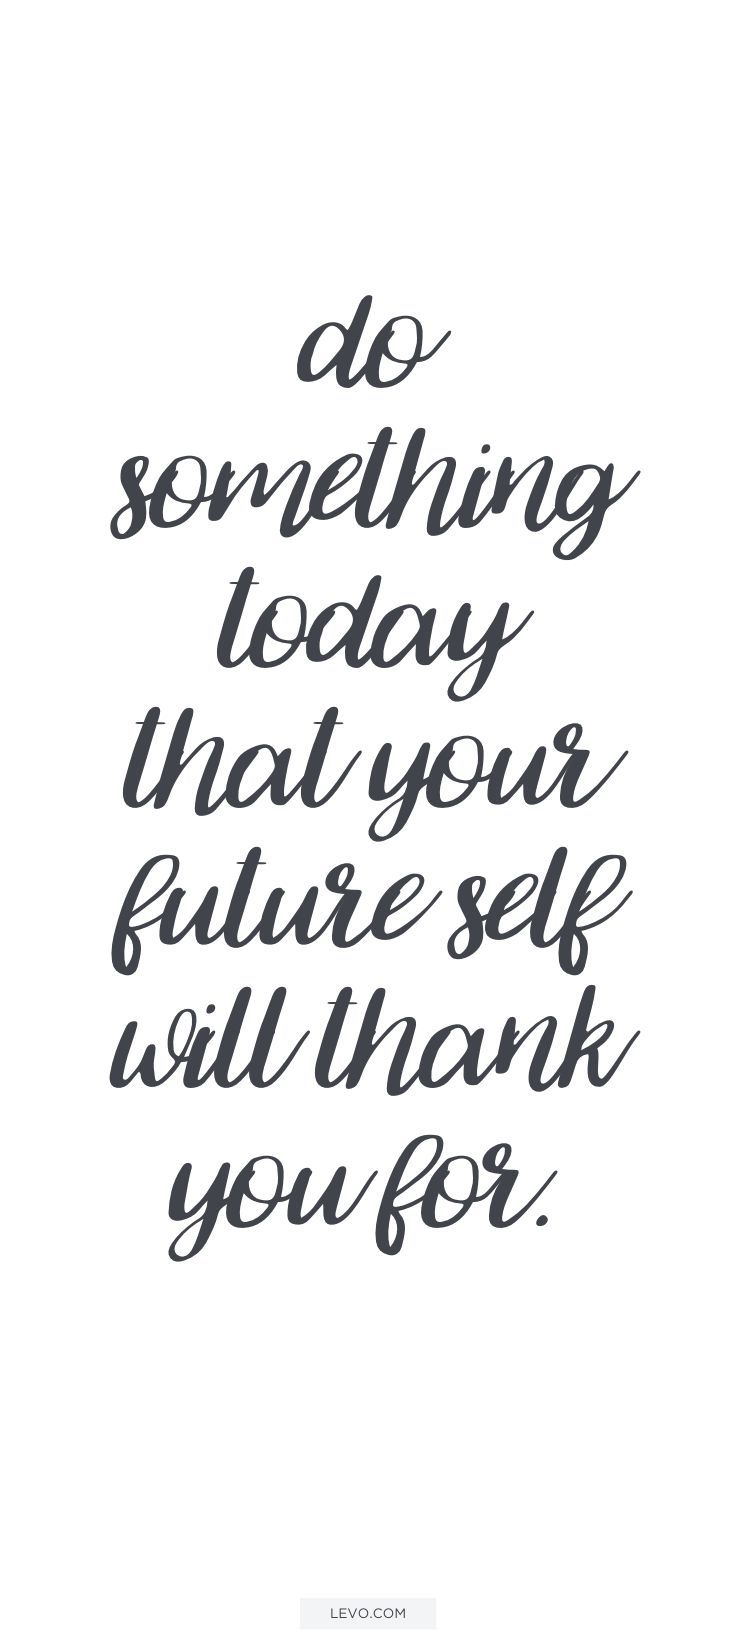 158944 best Positive Inspirational Quotes images on